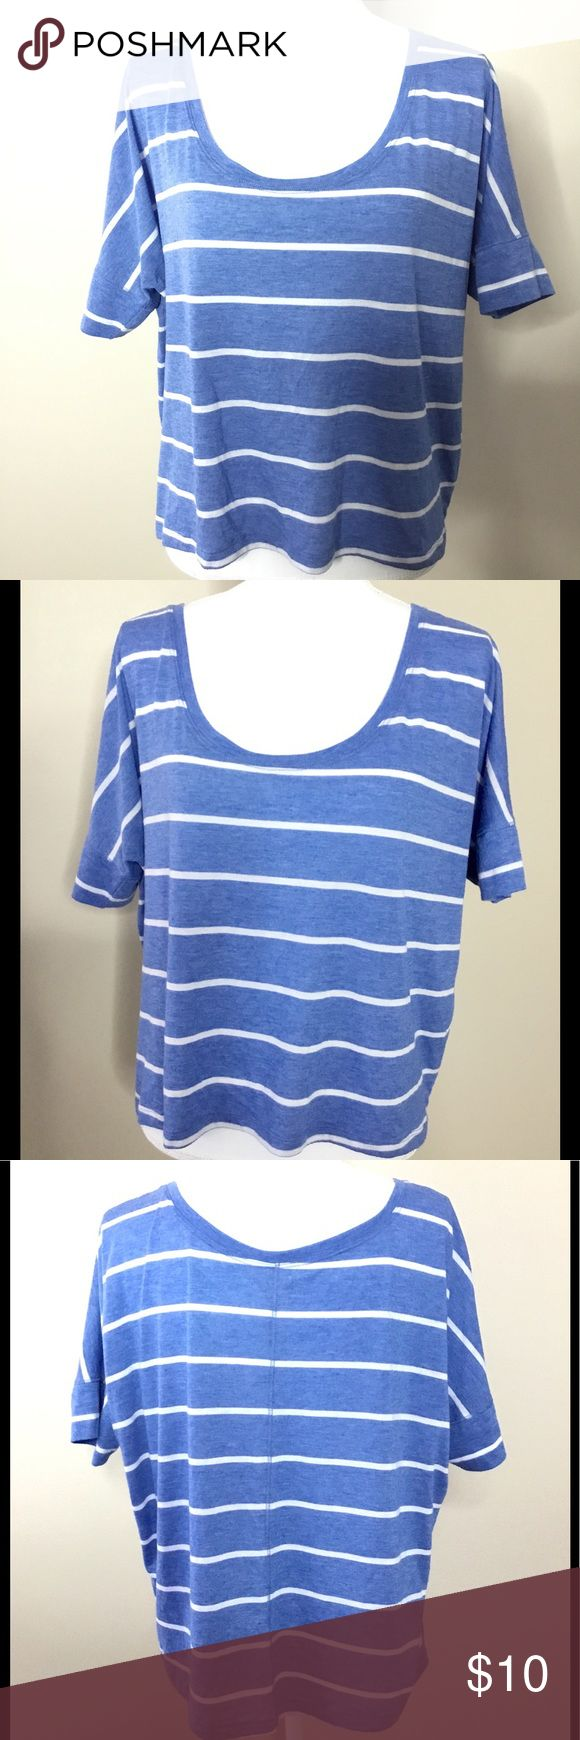 """AERIE Women's Size XL Blue White Striped T-Shirt Aerie women's striped blue and white shirt top size XL. Rayon and polyester.   Approximate measurements while lying flat:  Bust 26"""" Length 21"""" aerie Tops Tees - Short Sleeve"""